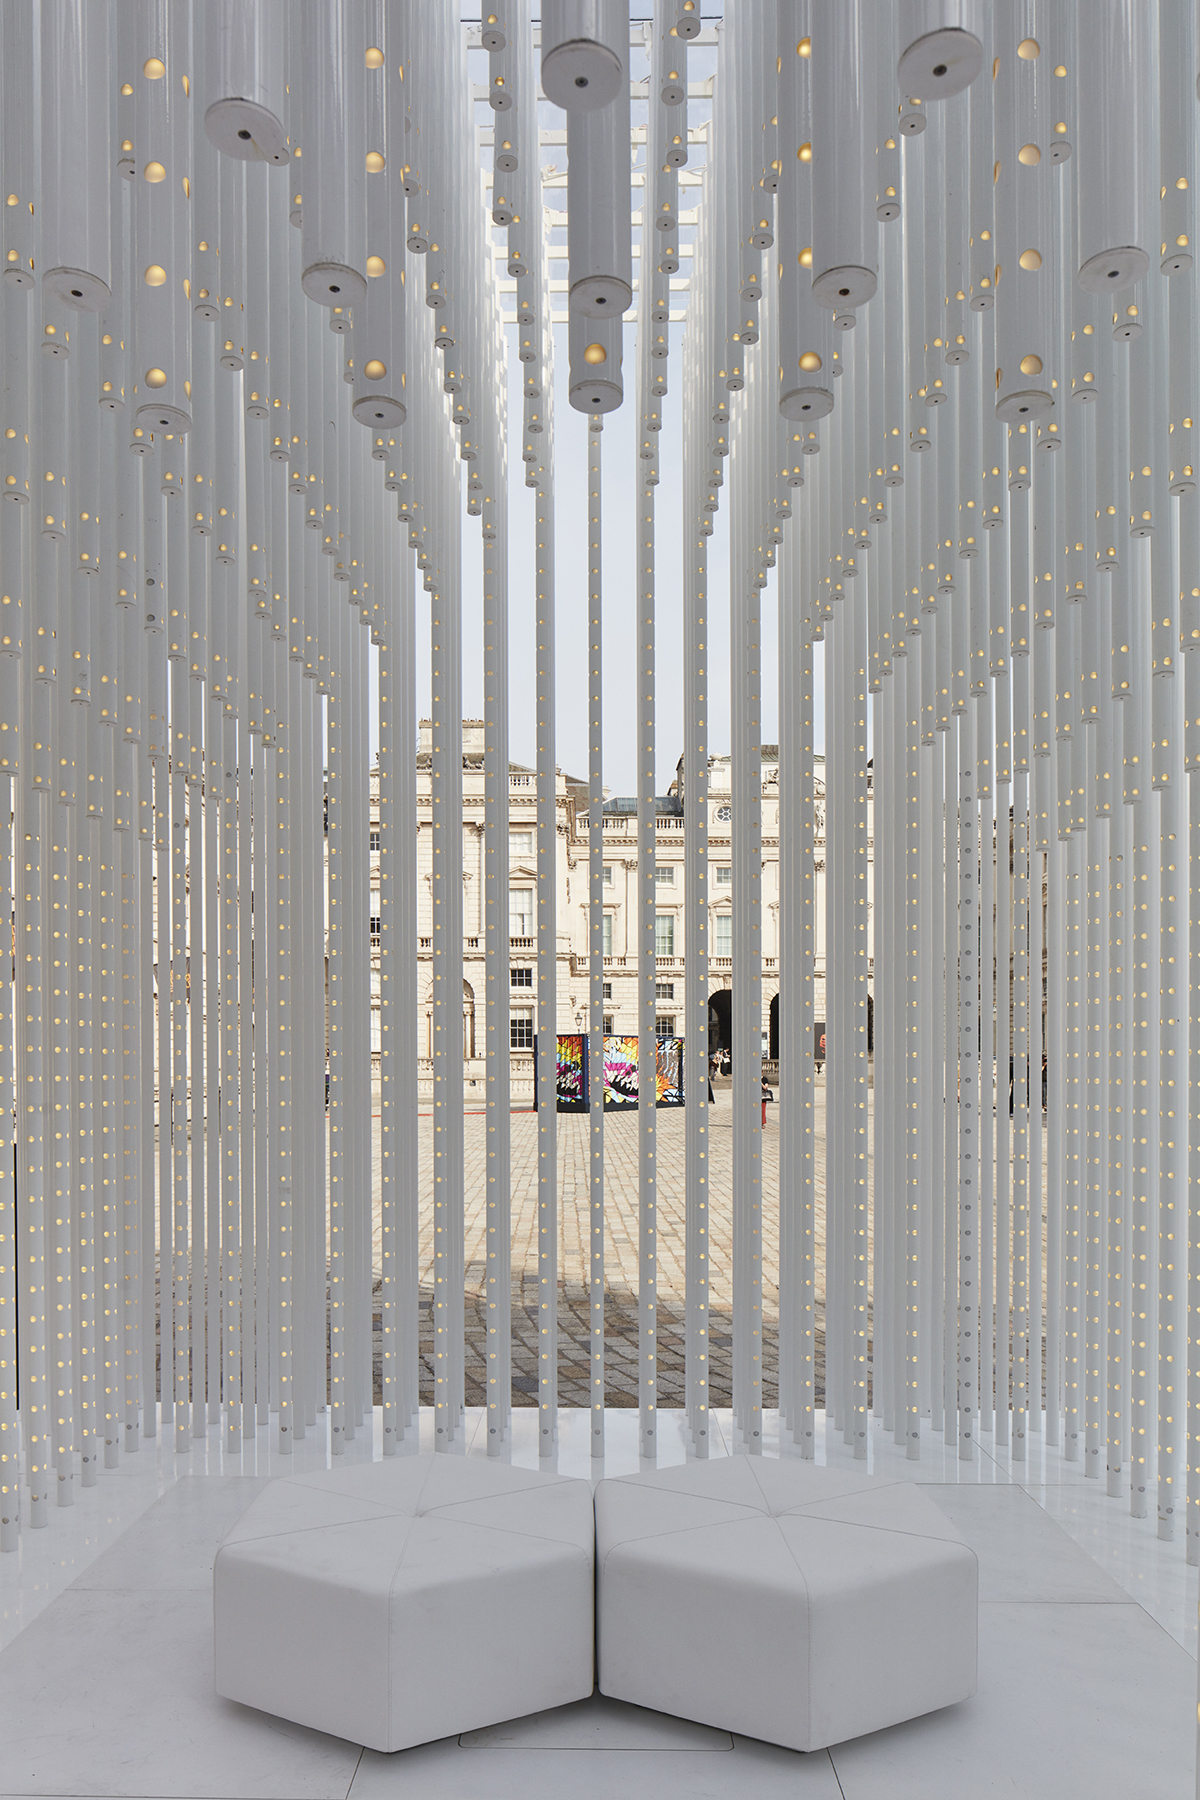 HousEmotion is the installation of Tabanlıoğlu Architects